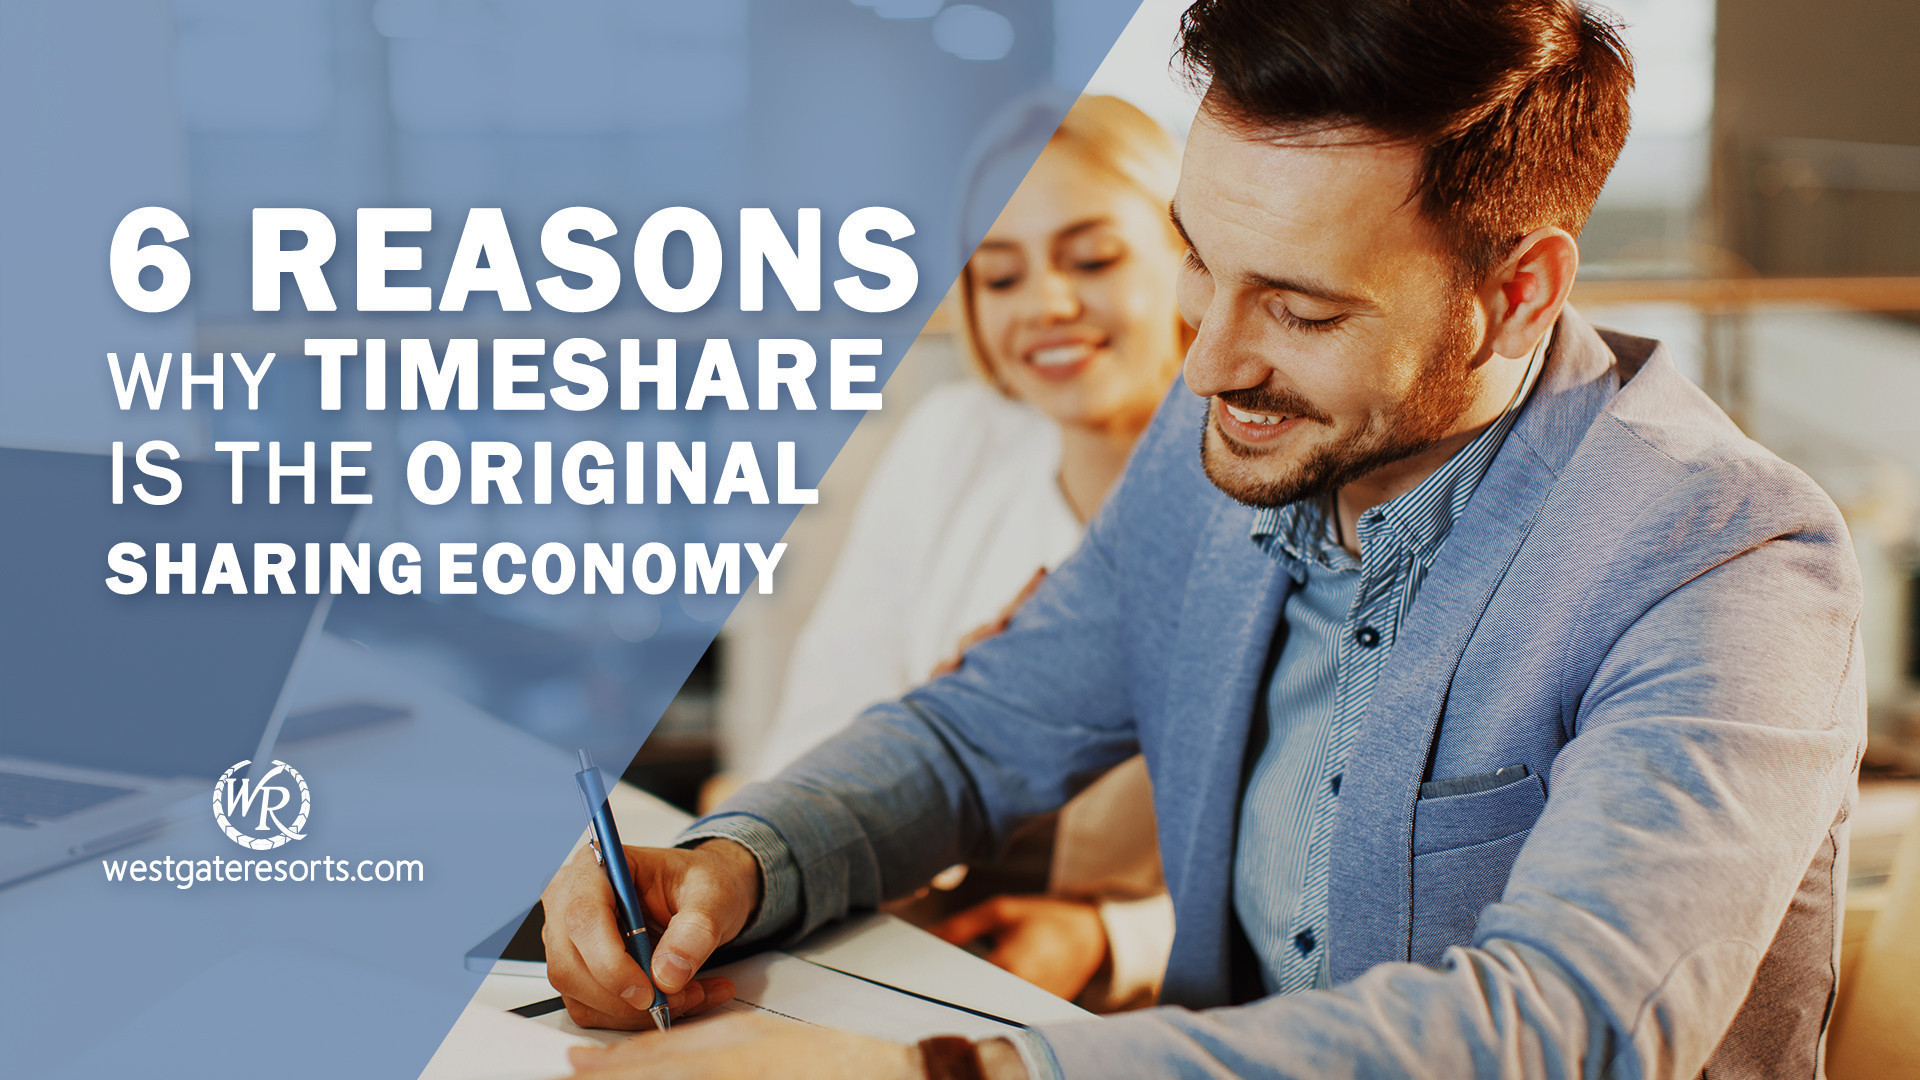 6 Reasons Why Timeshare Is The Original Sharing Economy | Sharing Economy Origins | Westgate Resorts